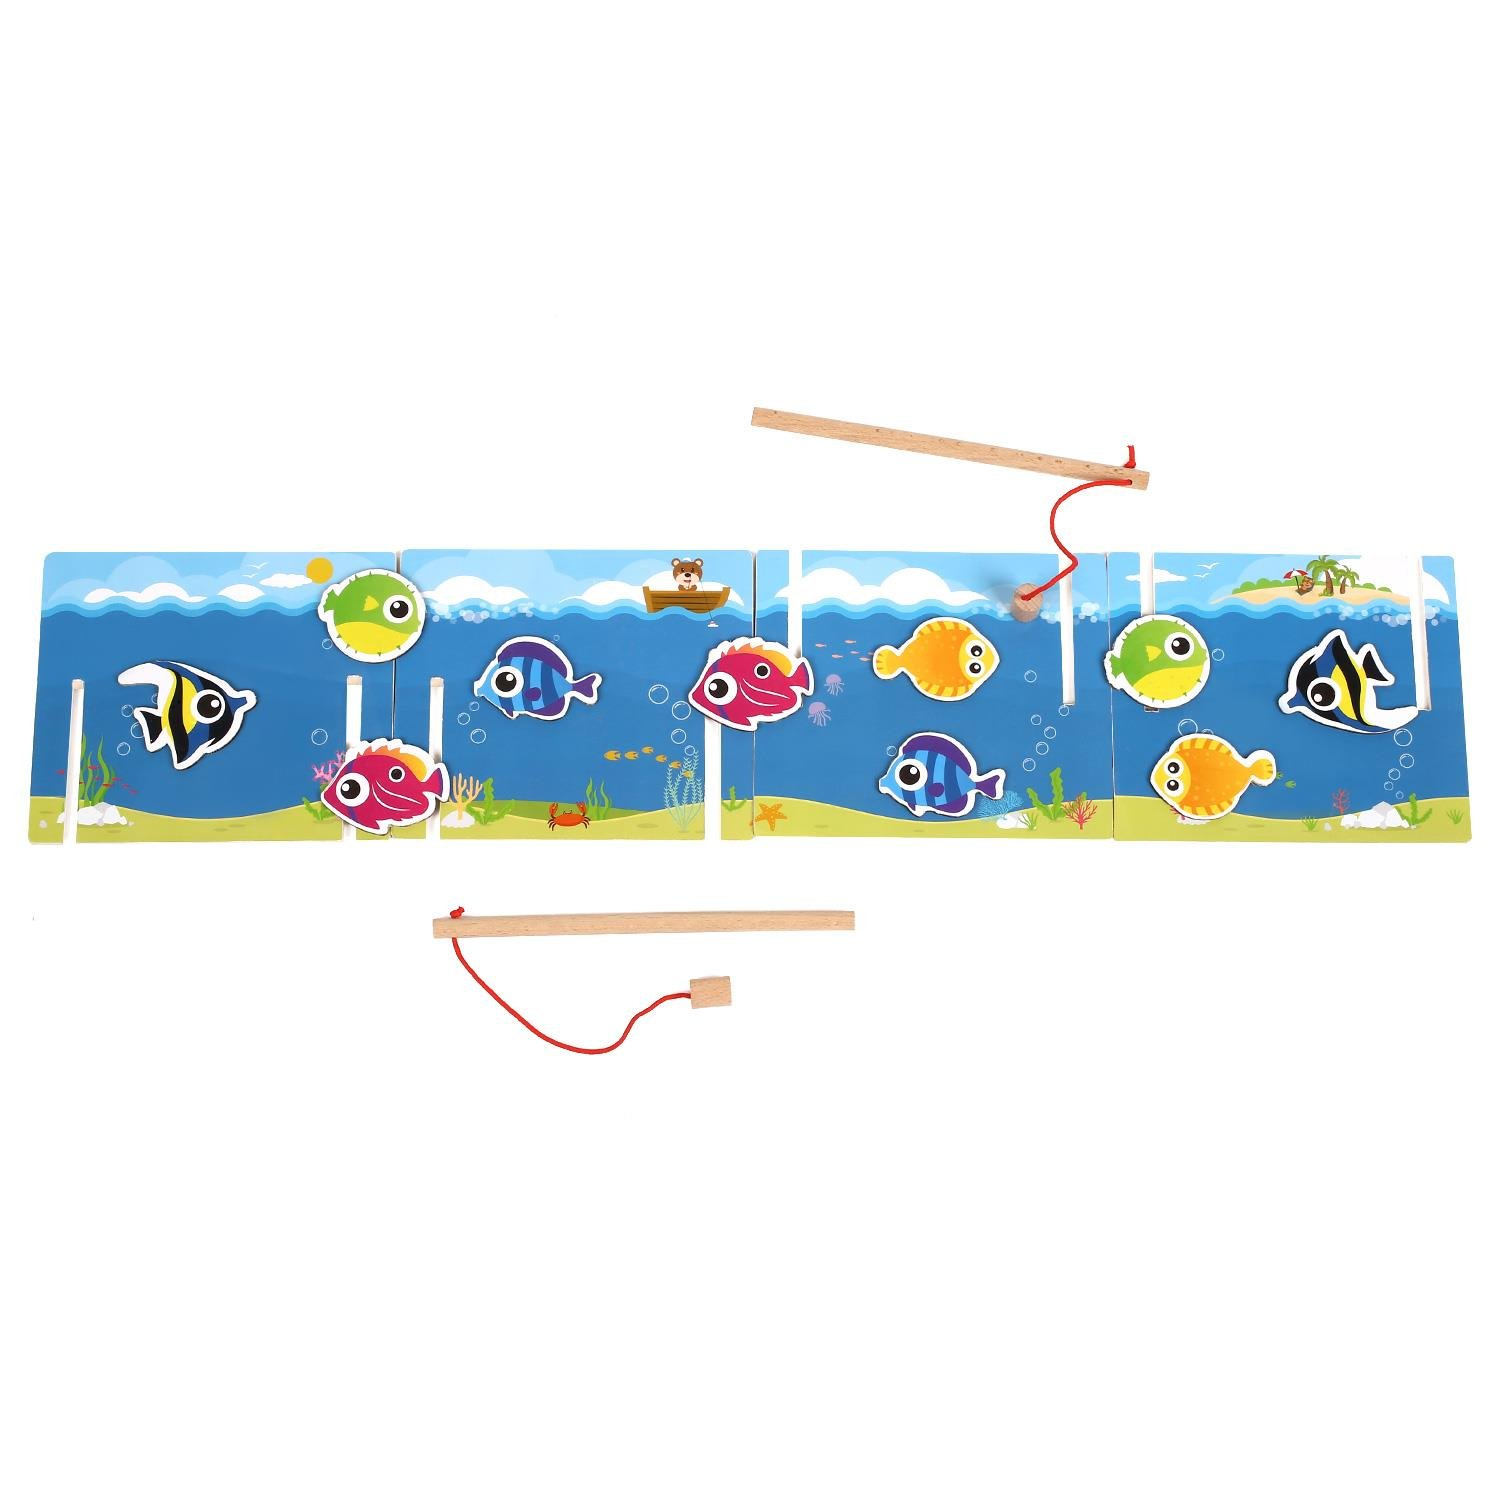 Wooden Fishing Game Toys Set for Toddlers Wooden Magnetic Puzzle Board with Kids Play Magnetic Fishing Rods Pole Activity Game Kits Mesh Storage Bag & Gift Bag by Peradix